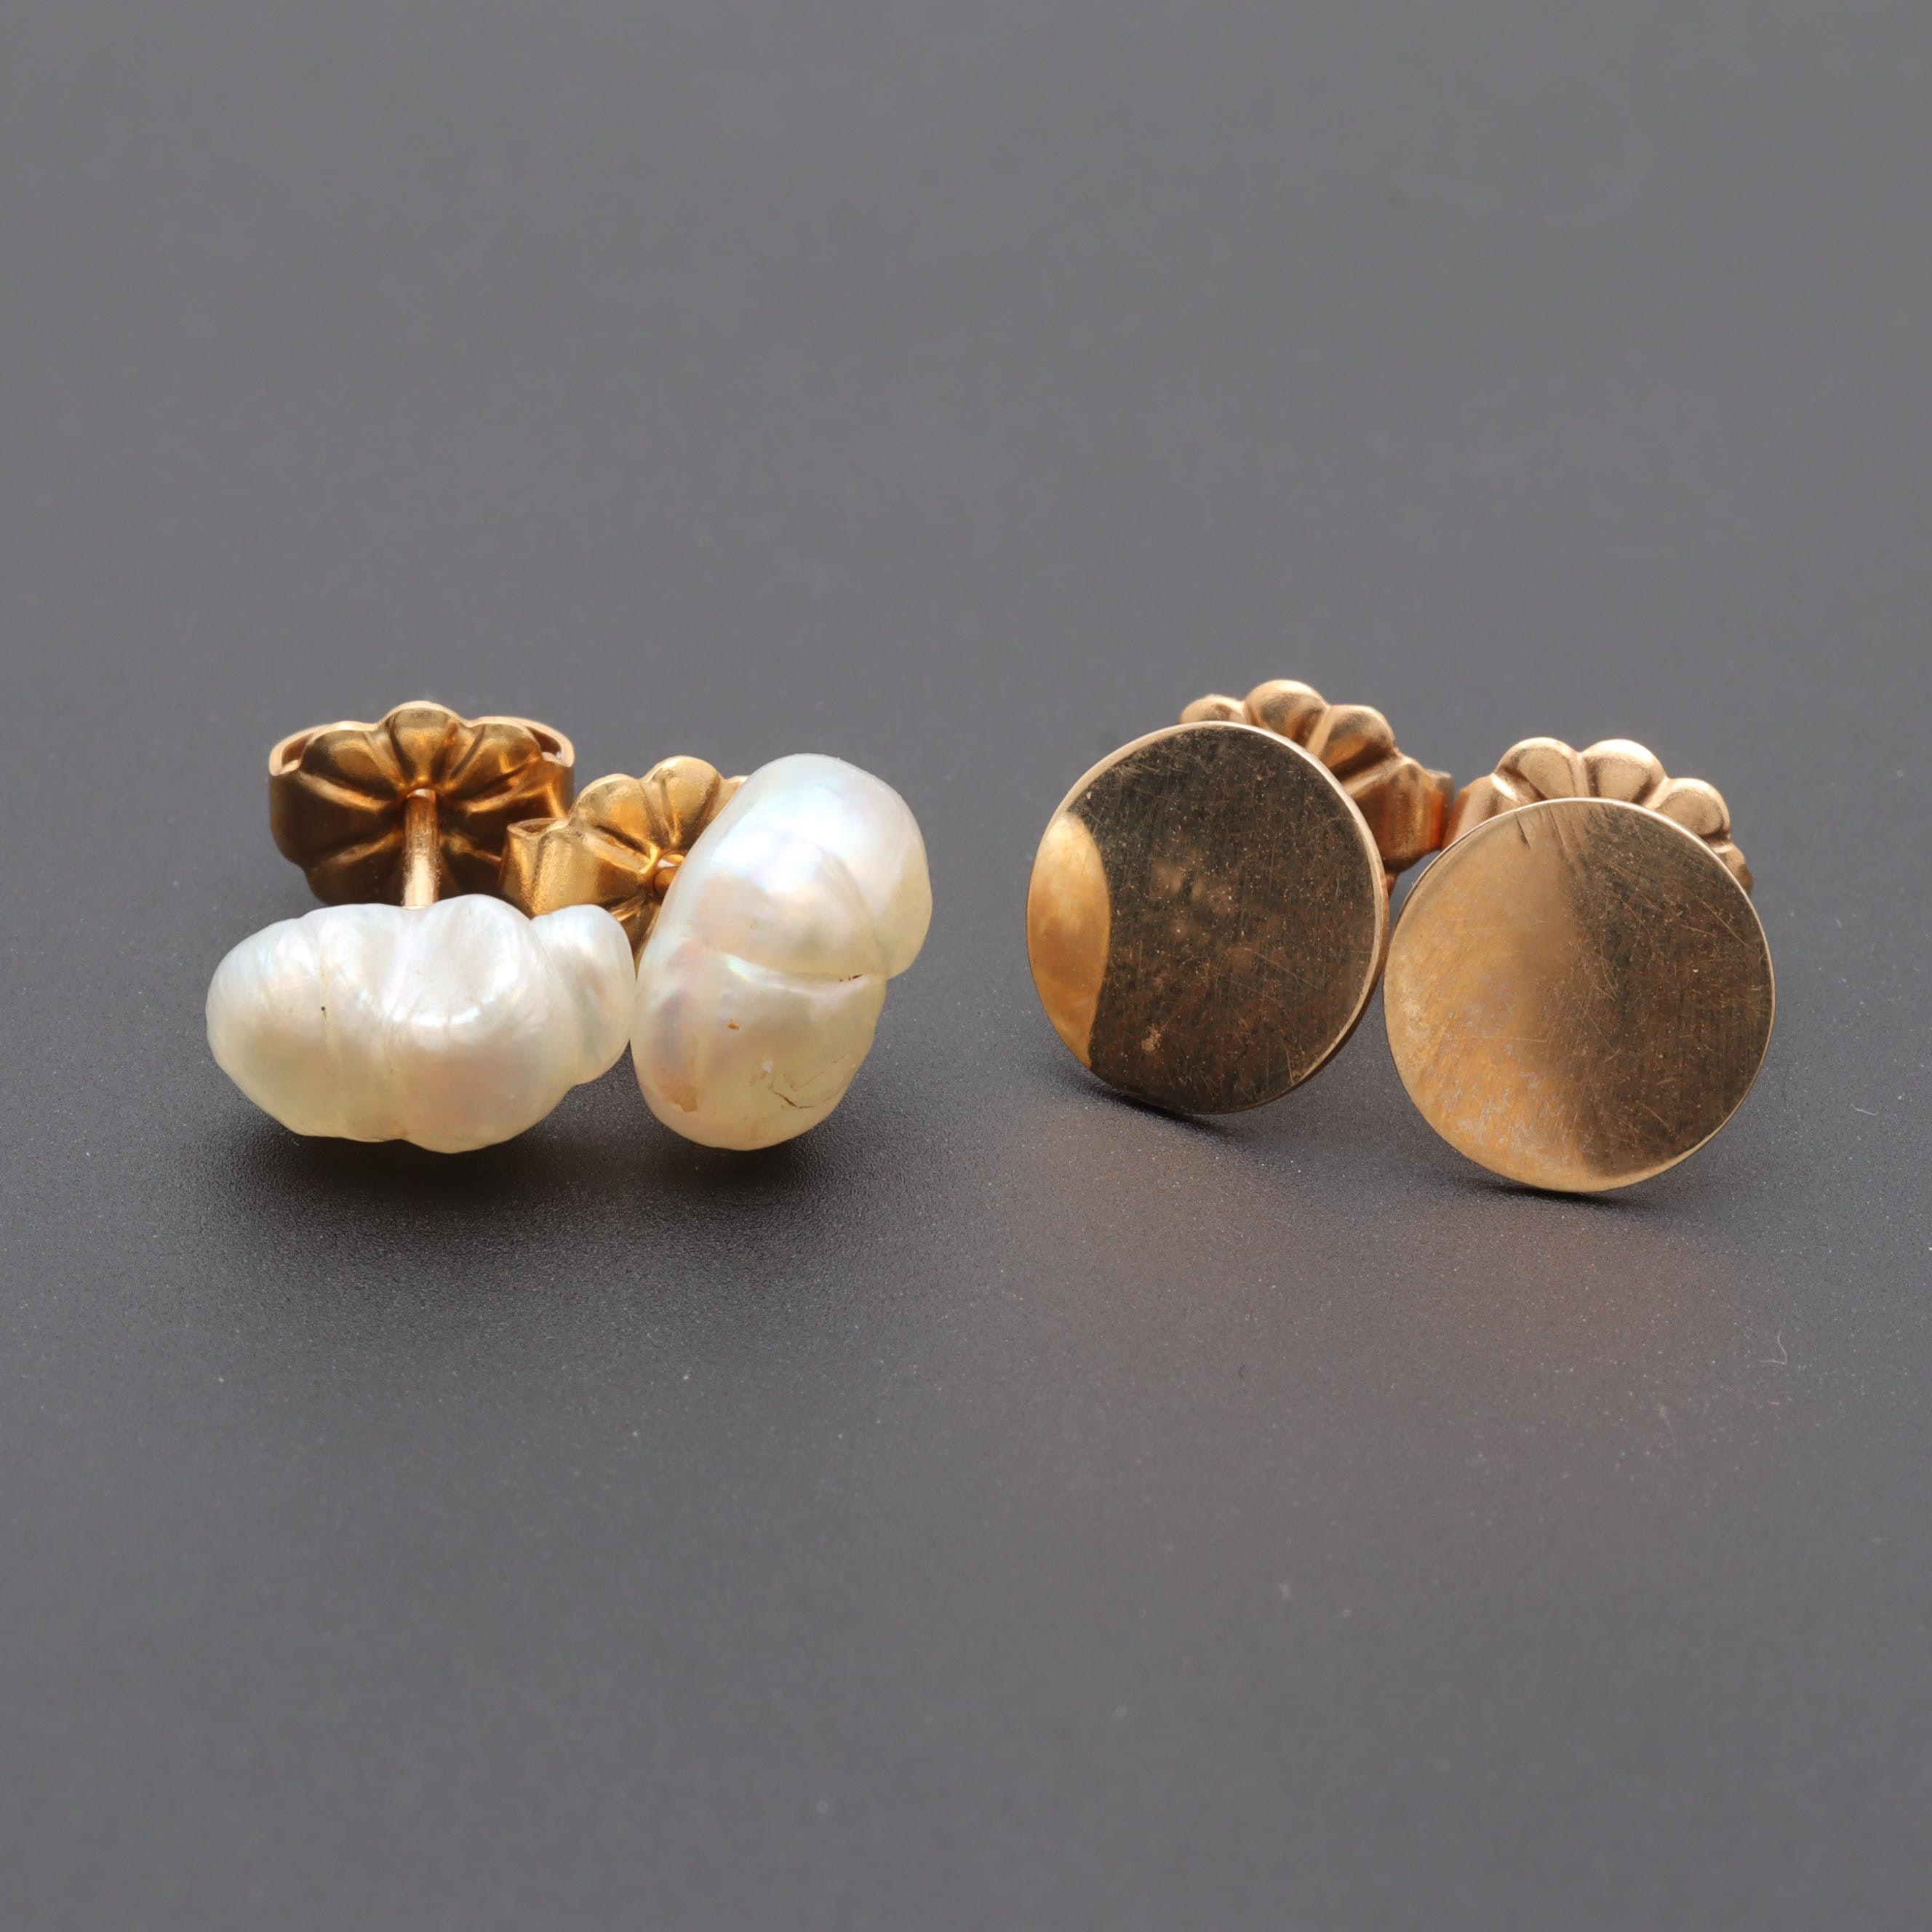 14K Yellow Gold Stud Earring Selection Including Cultured Pearls